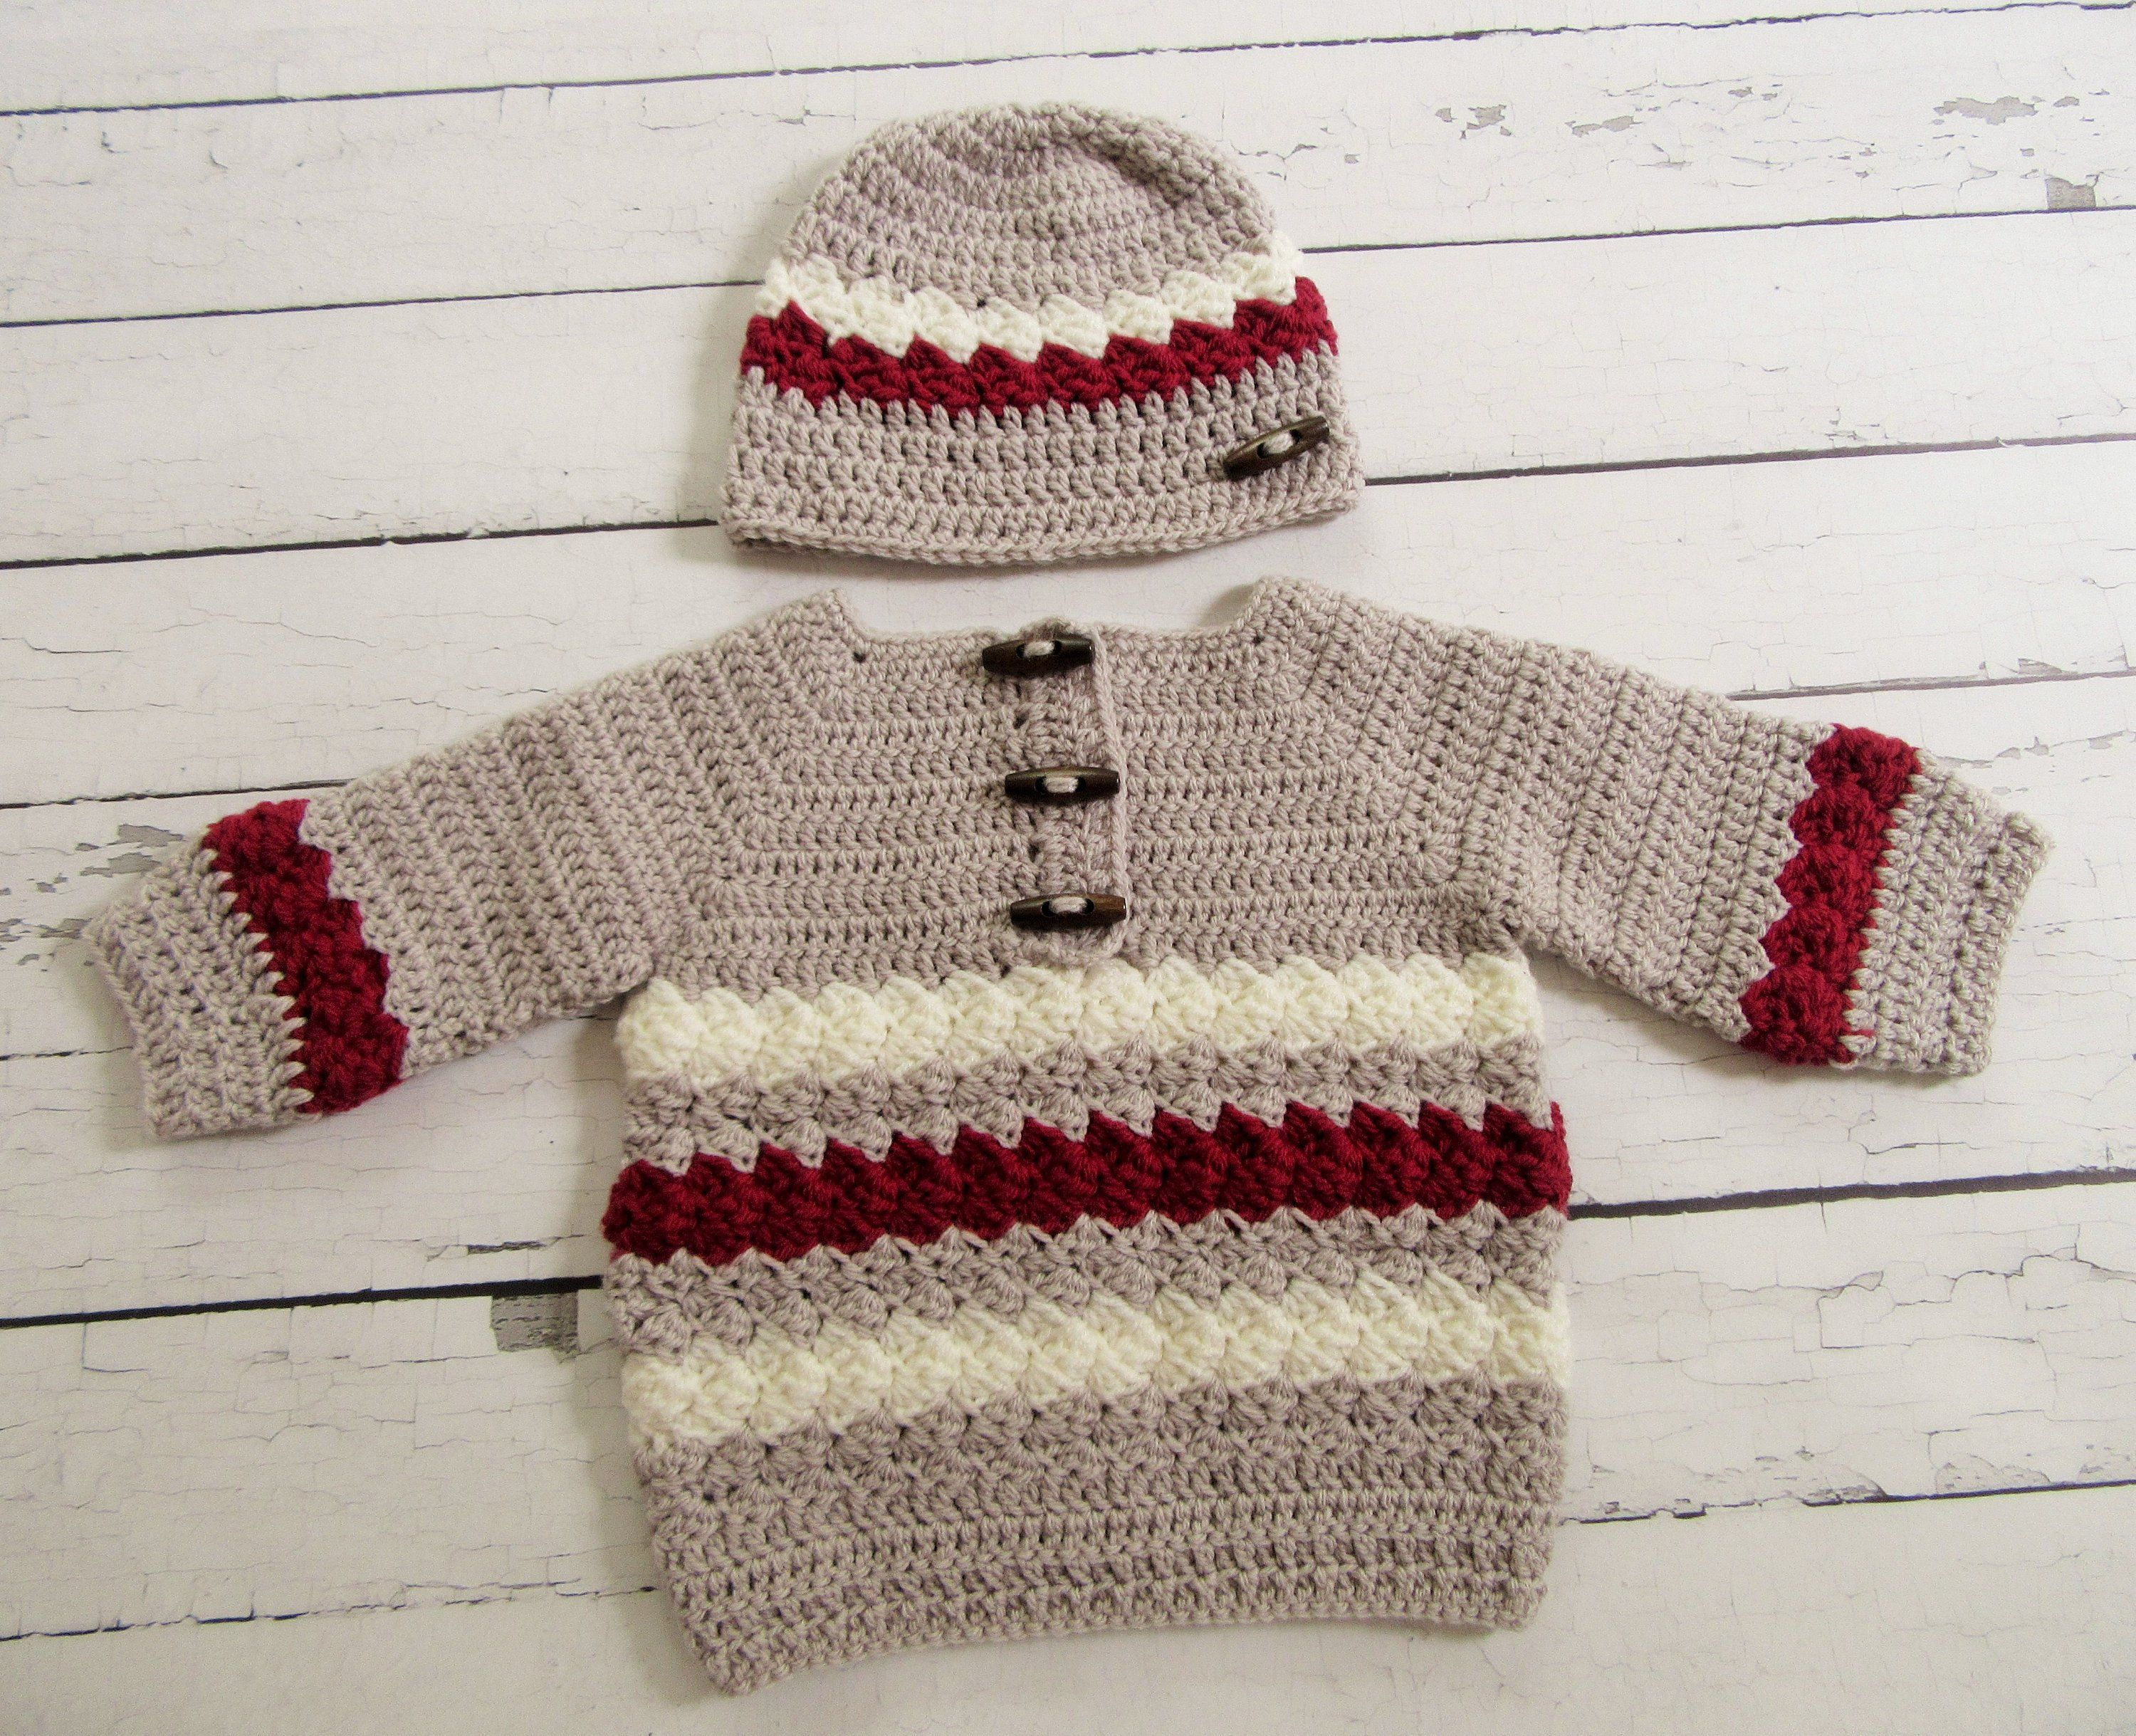 9ab961528 Baby Sweater and Hat, Crochet Baby Outfit, Crochet Baby Gift, Baby Boy  Sweater